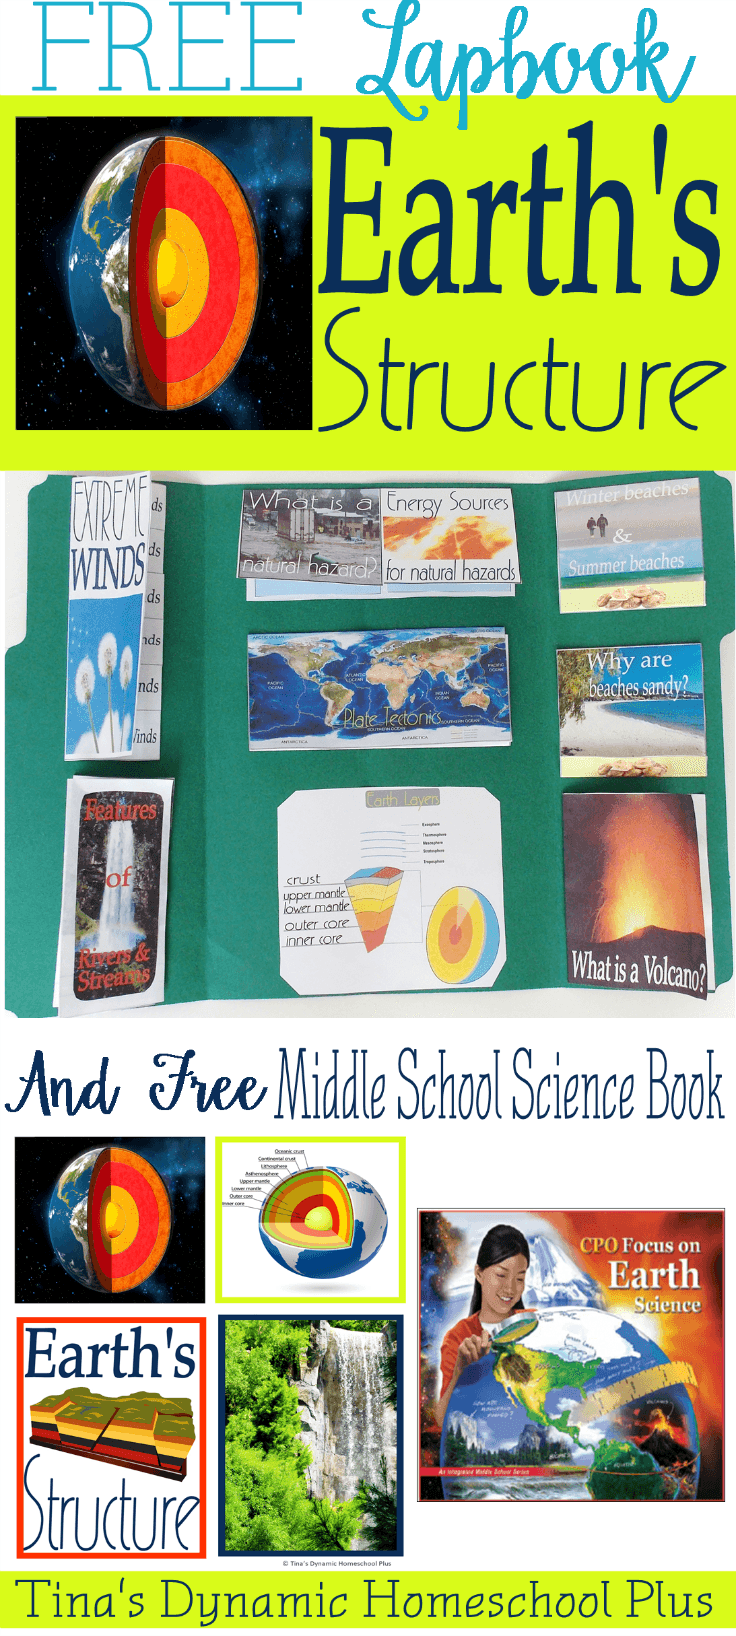 Free Earth Structure Lapbook & Middle School Science Book @ Tina's Dynamic Homeschool Plus